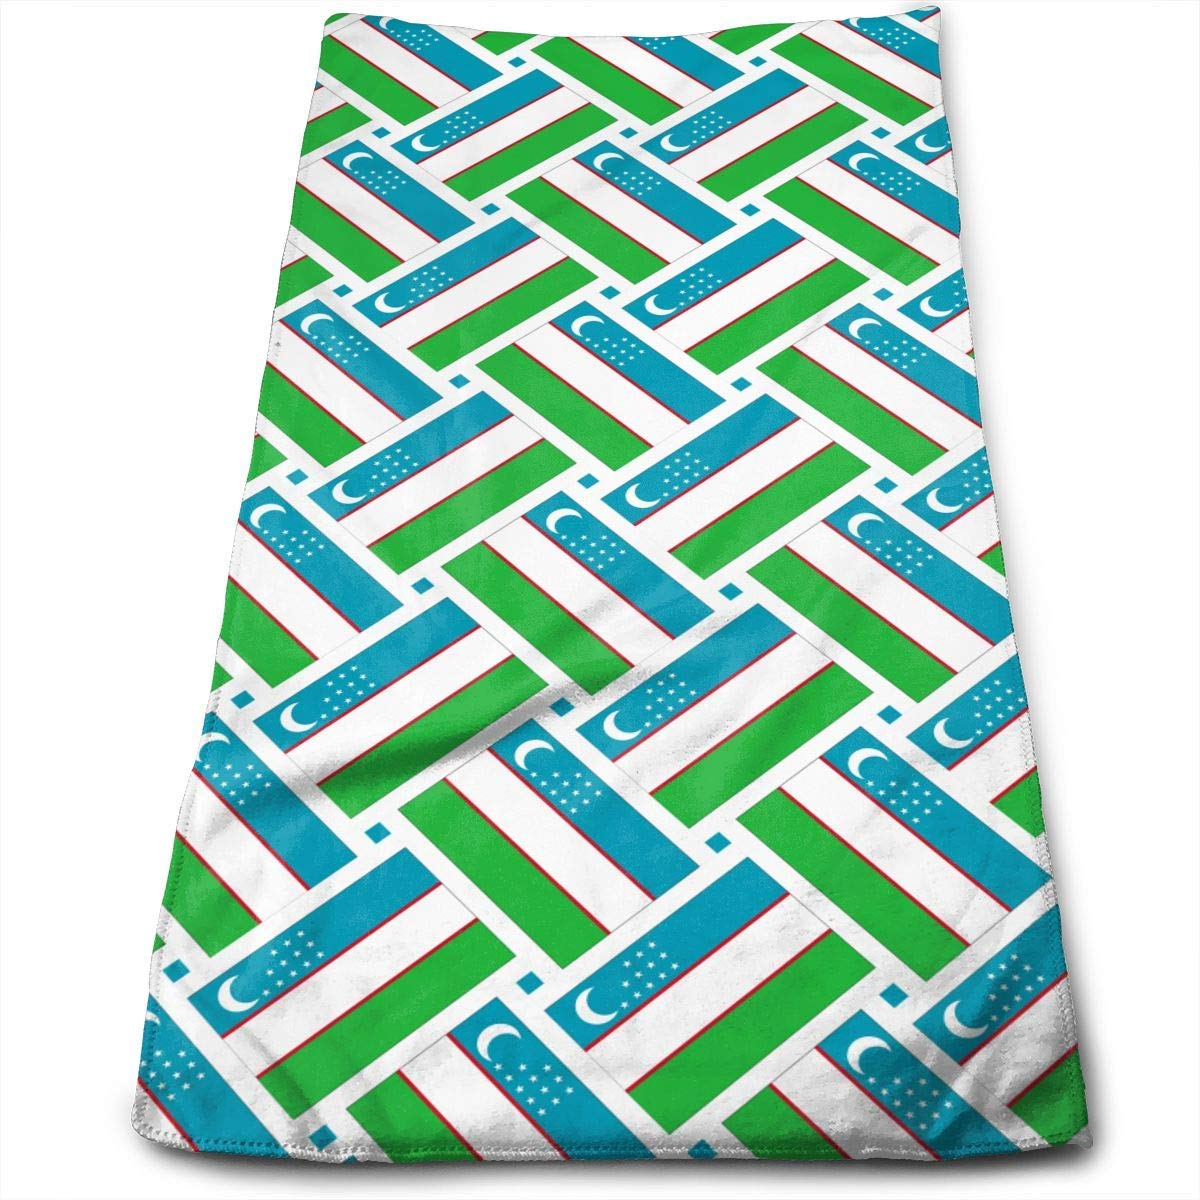 Hand Towels Uzbekistan Flag Weave Highly Absorbent Quick-Dry Towels for Hand Face Gym and SPA 12' X 27.5'